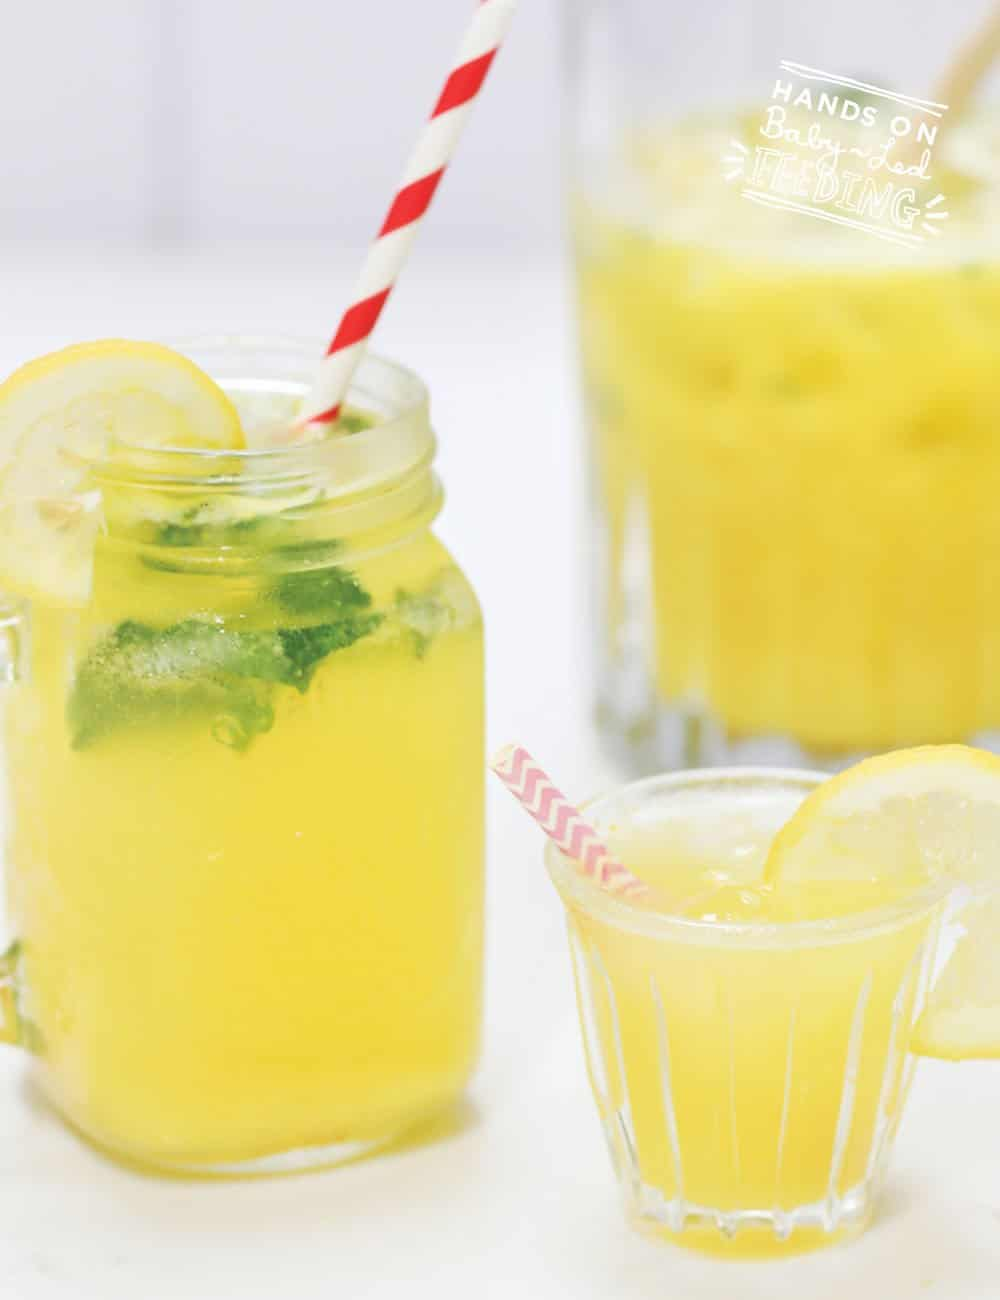 3 Ingredient Refined Sugar Free/ No Sugar Added Lemonade for Kids! Nothing says summer like lemonade but it's usually loaded with sugar, NOT THIS RECIPE! This refreshing sugar free lemonade is all natural and just as sweet tasting as other lemonades. #lemonade #summerdrinks #refinedsugarfree #noaddedsugar #kiddrinks #healthyjuice